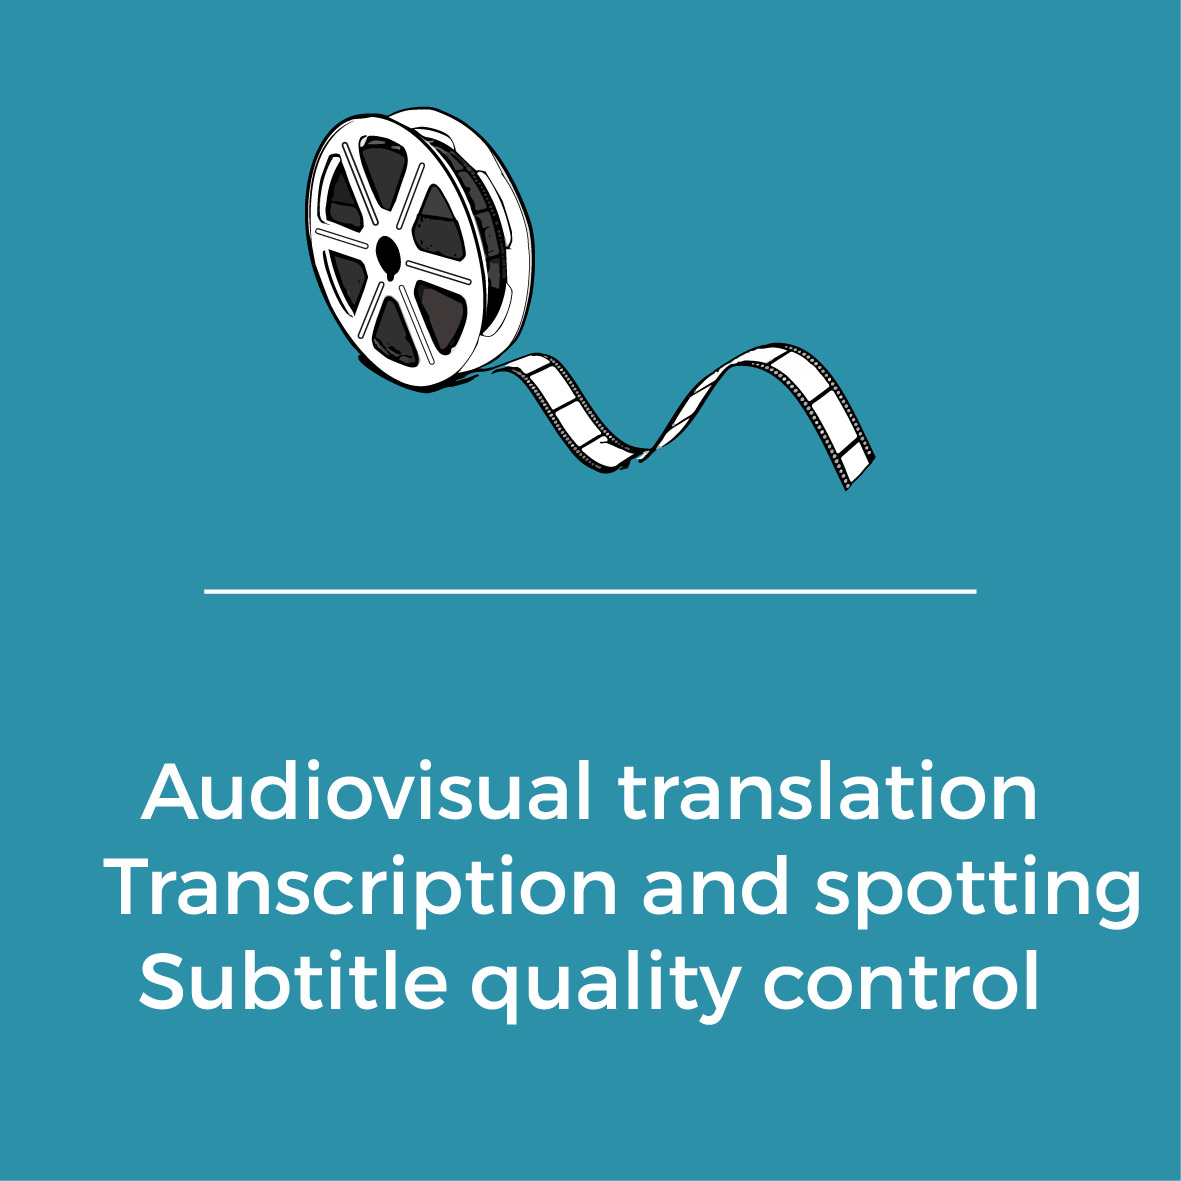 Services - Audiovisual translation - Transcription and spotting - Subtitle quality control